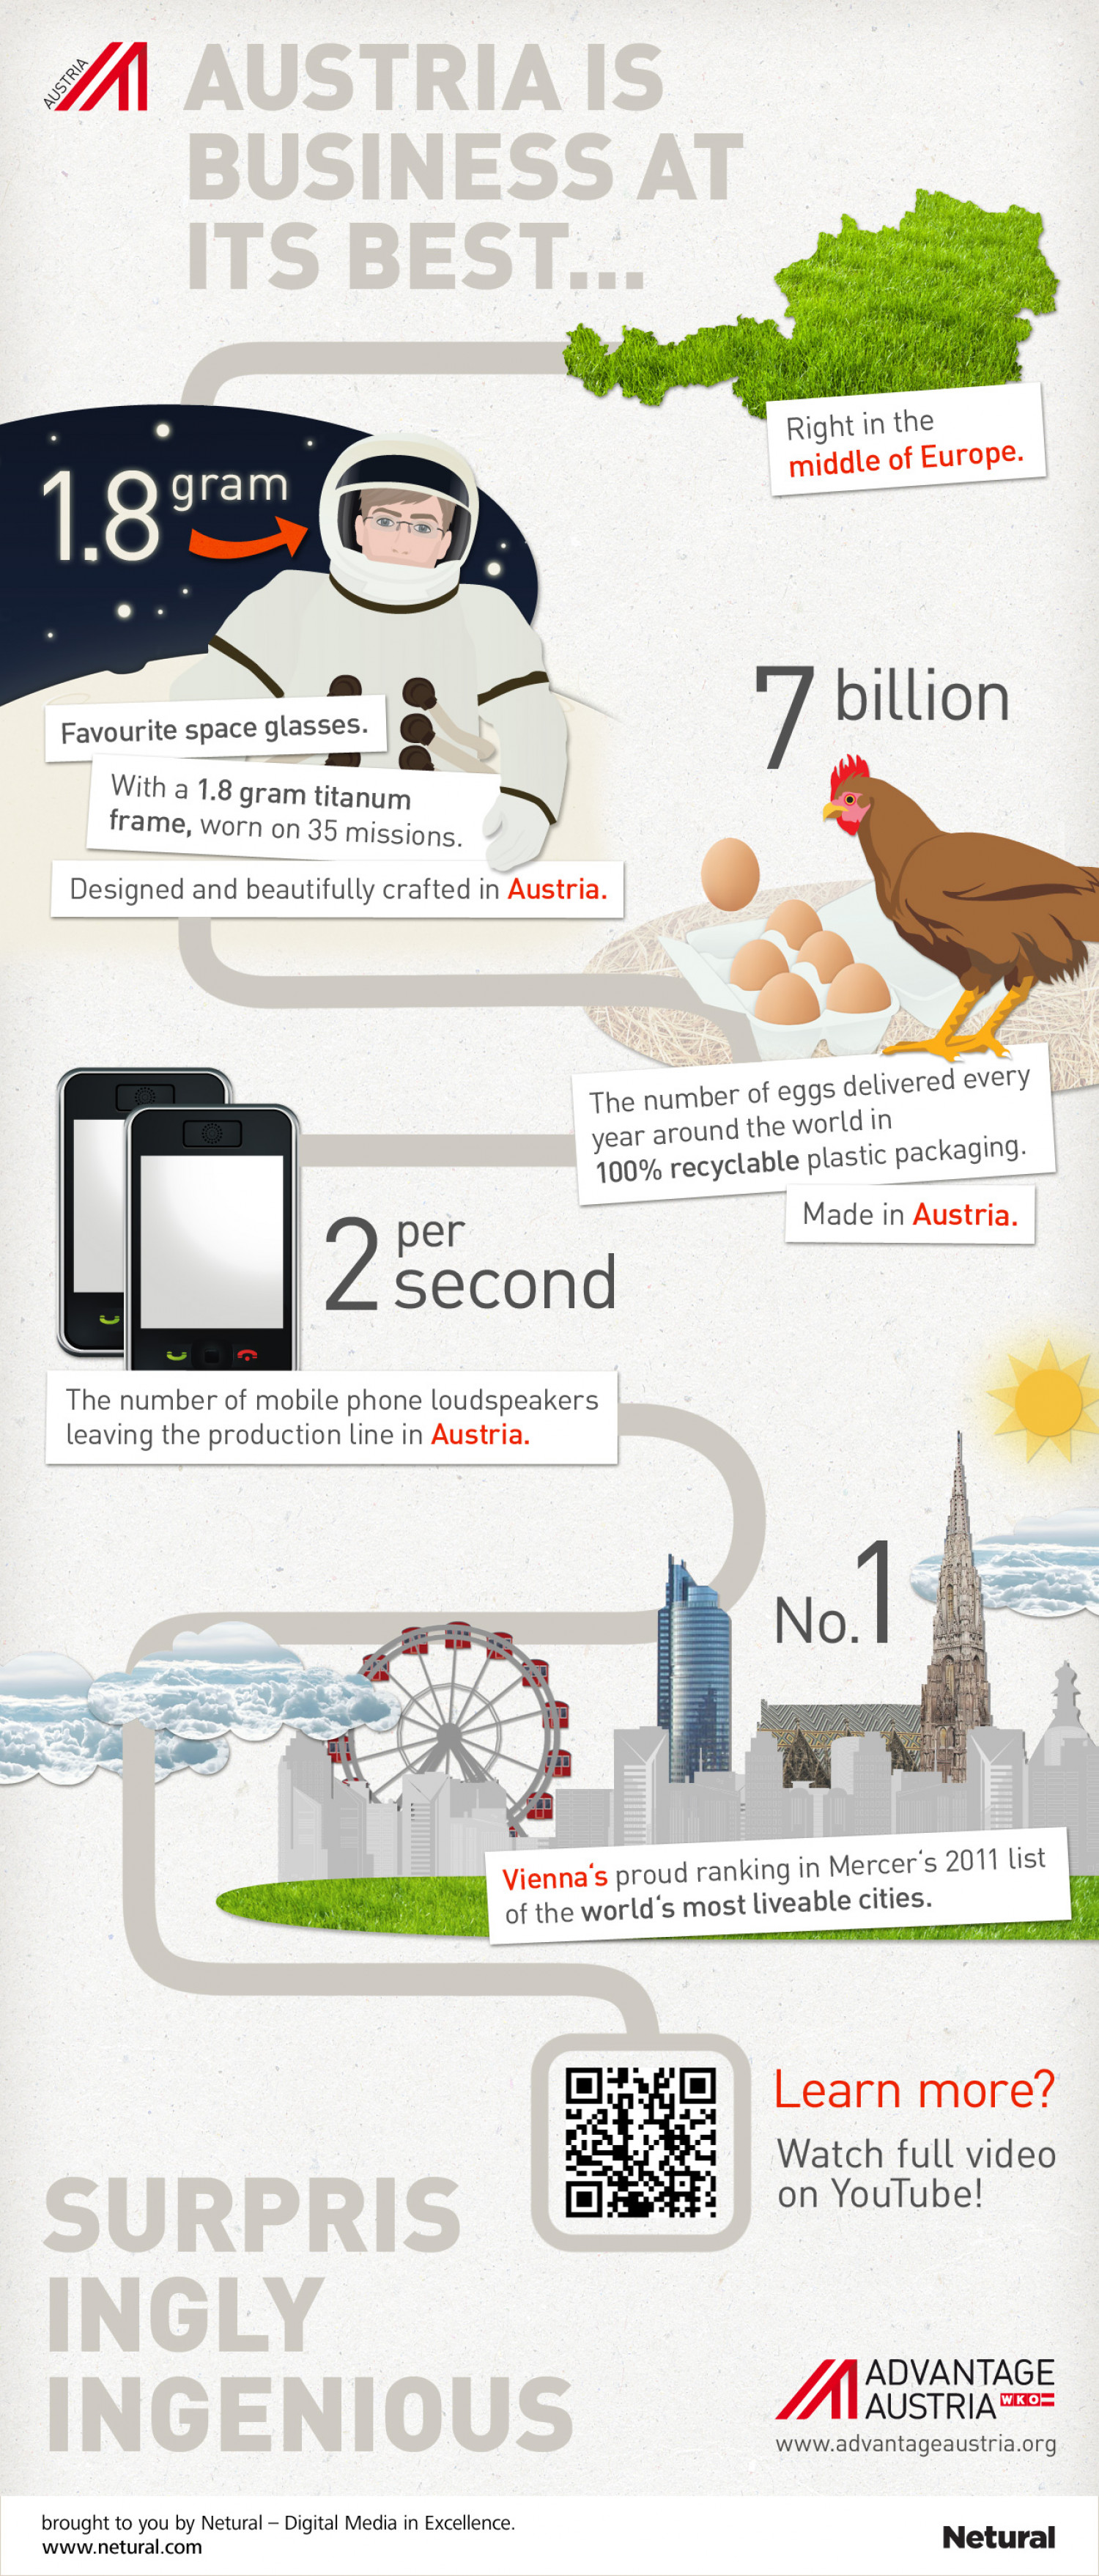 Surprisingly Ingenious: Austria is business at its best ... Infographic